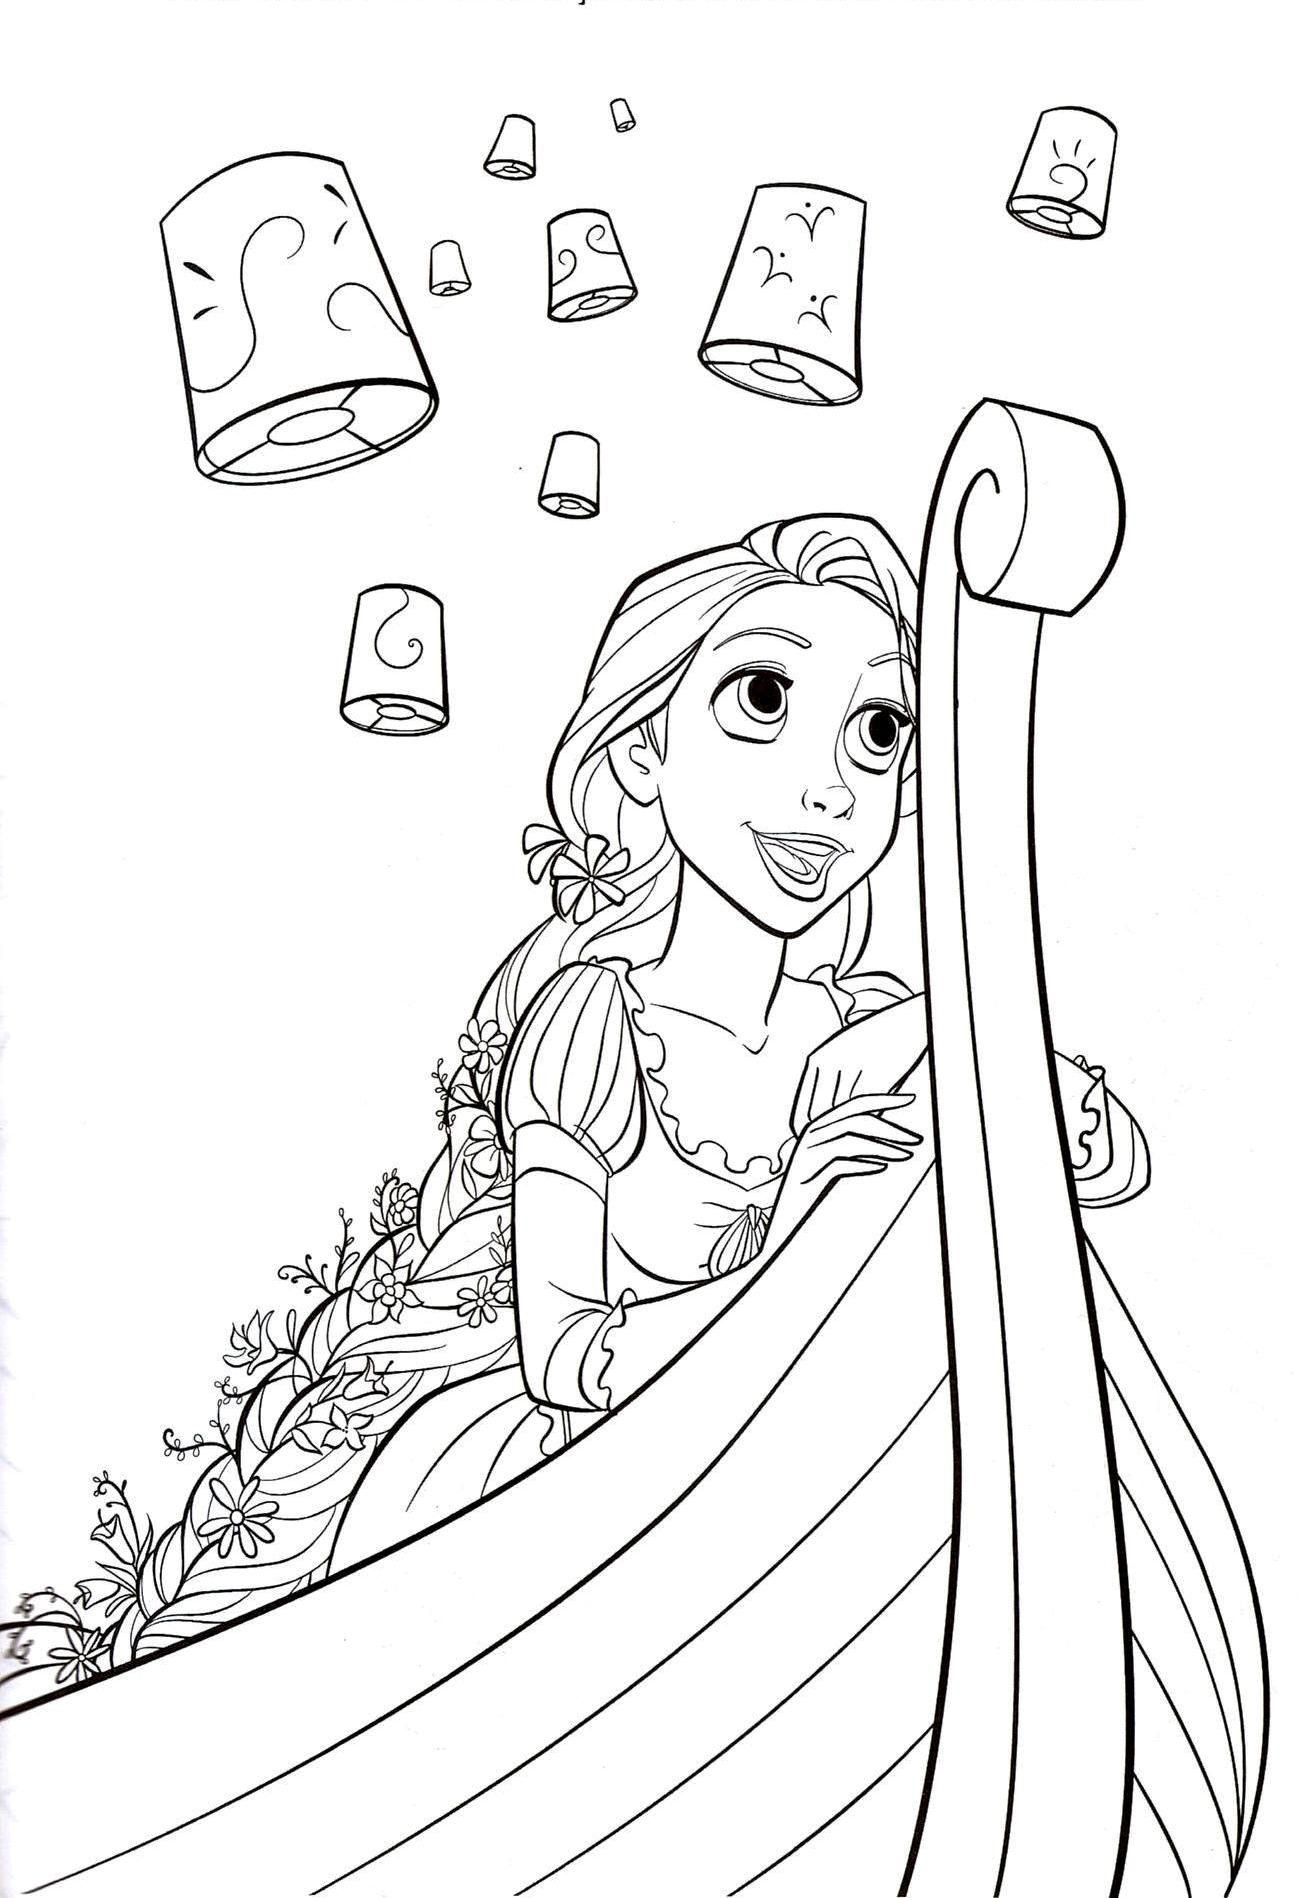 Disney Rapunzel Coloring Pages Free Printable Princess Tangled Colouring